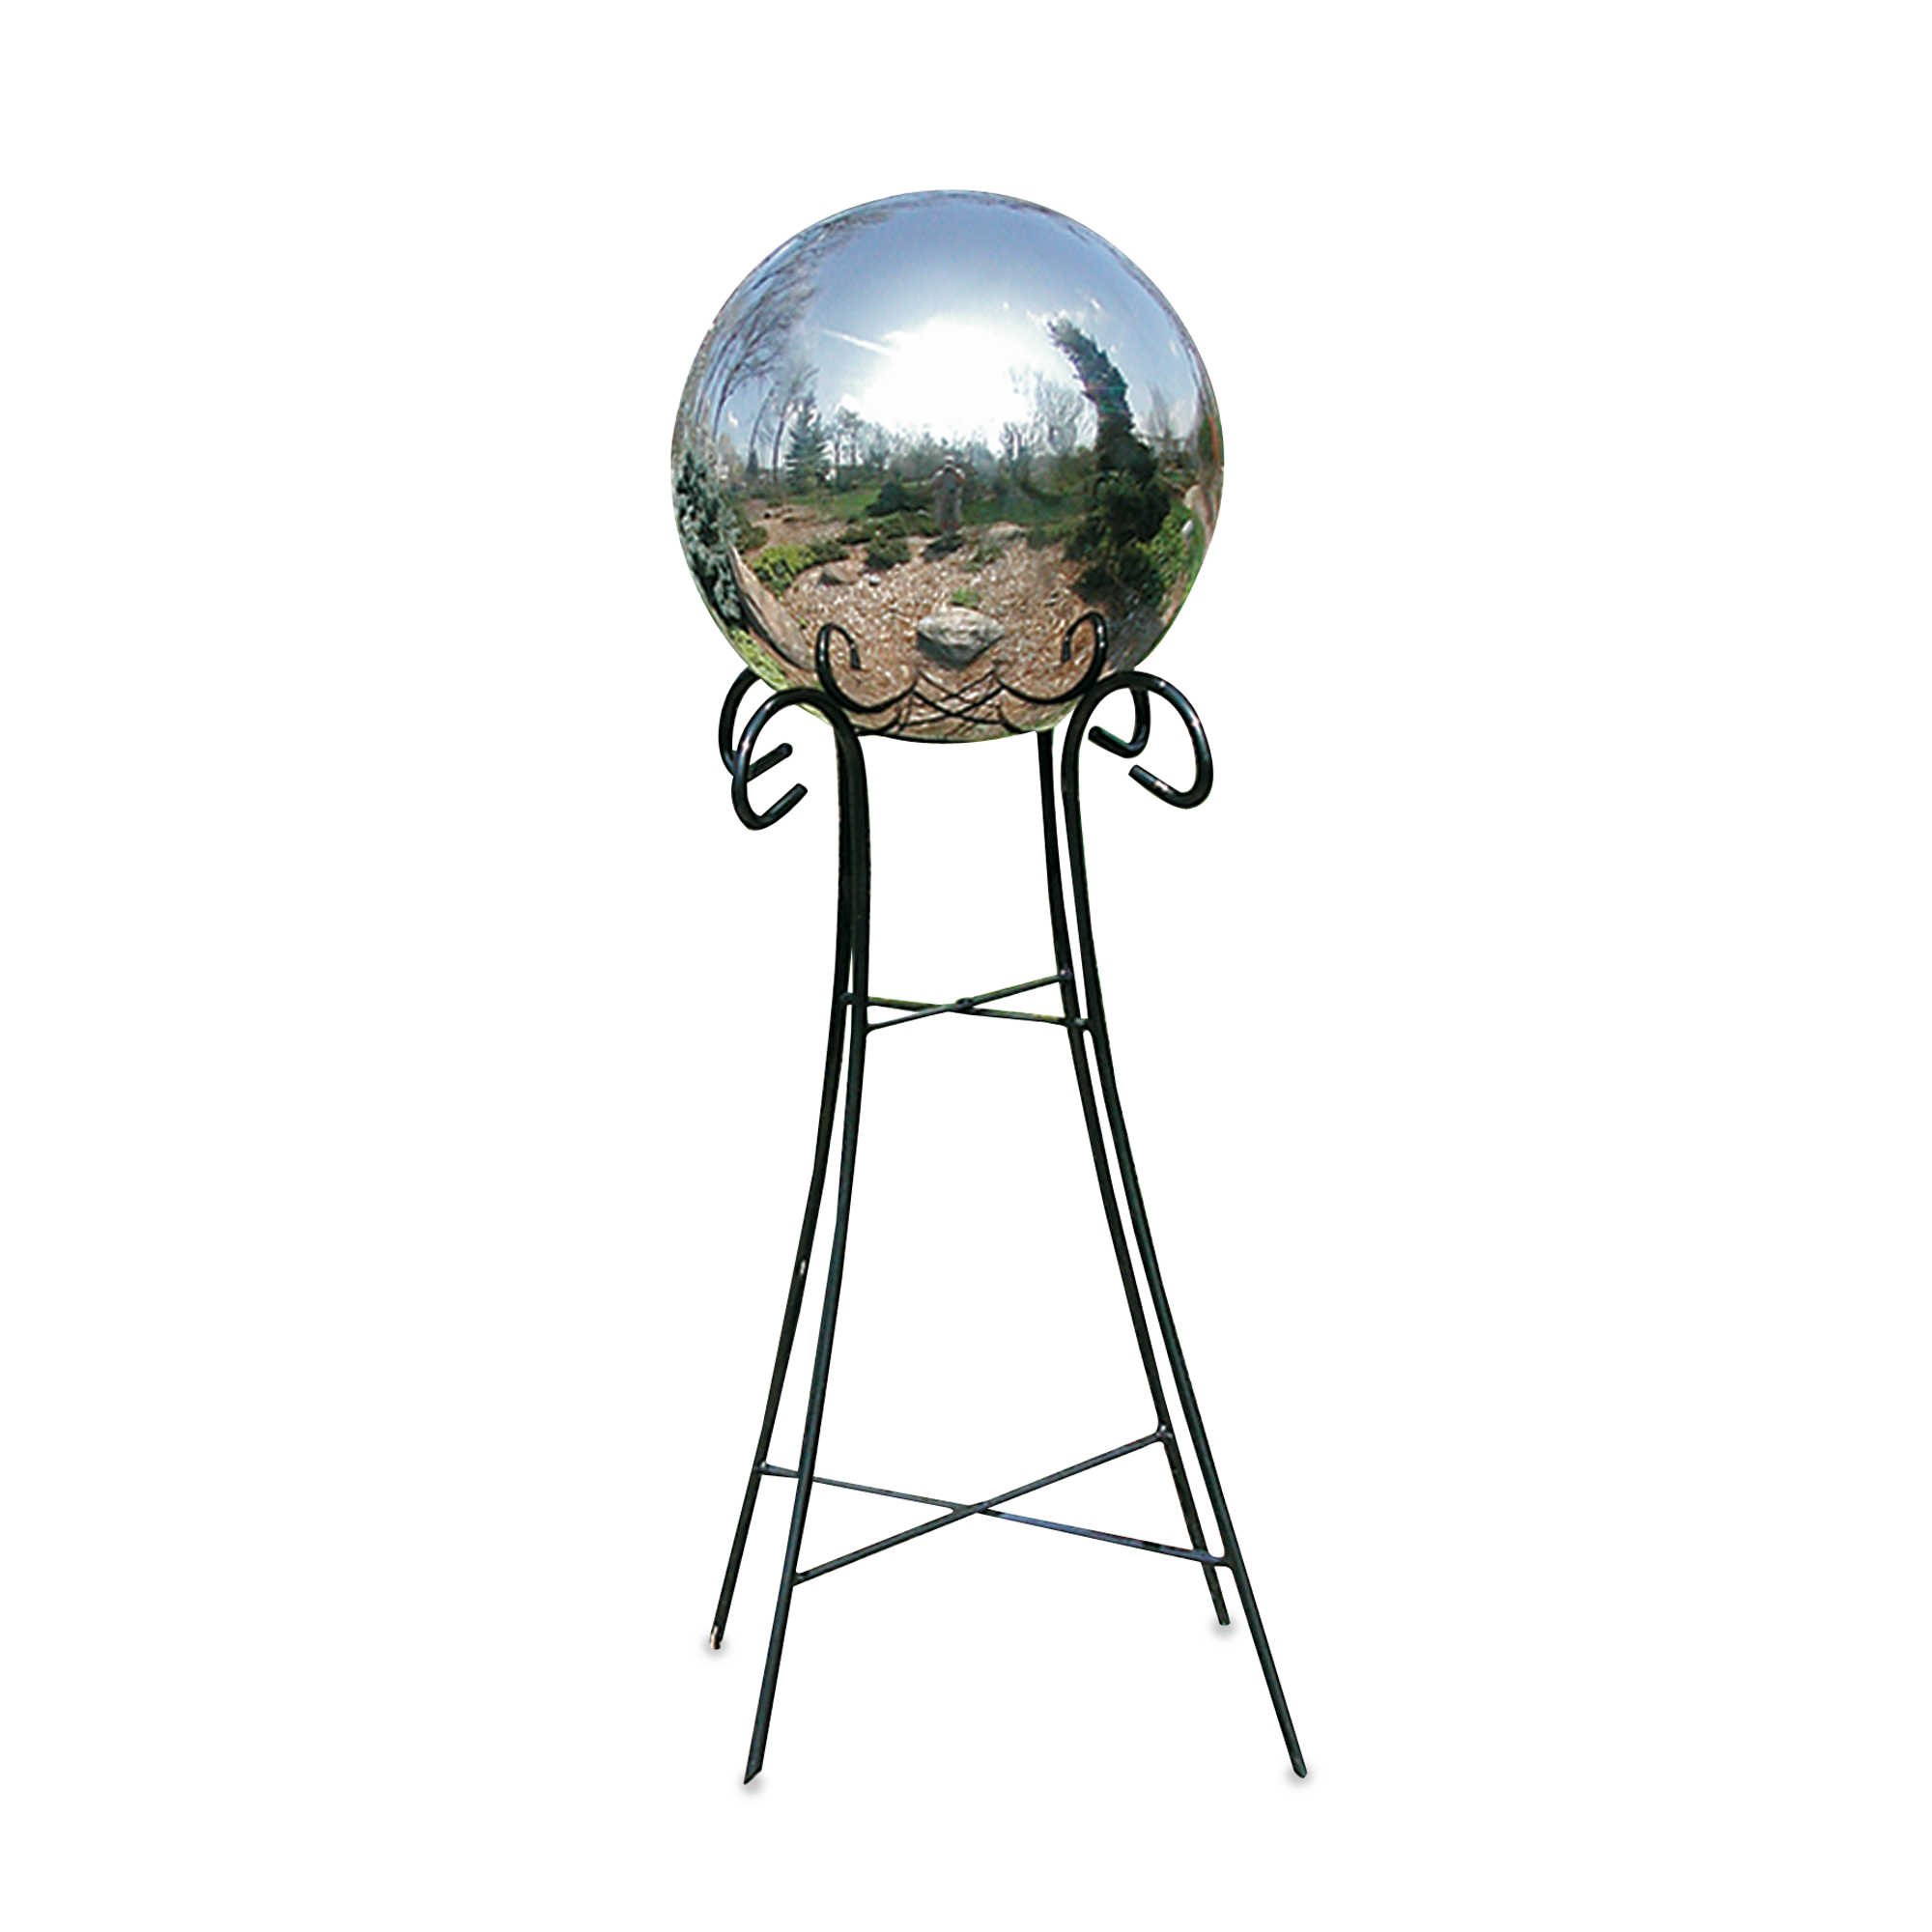 Rome Industries 24-Inch Pedestal Base for 10-Inch & 12-Inch Gazing Balls in Wrought Iron